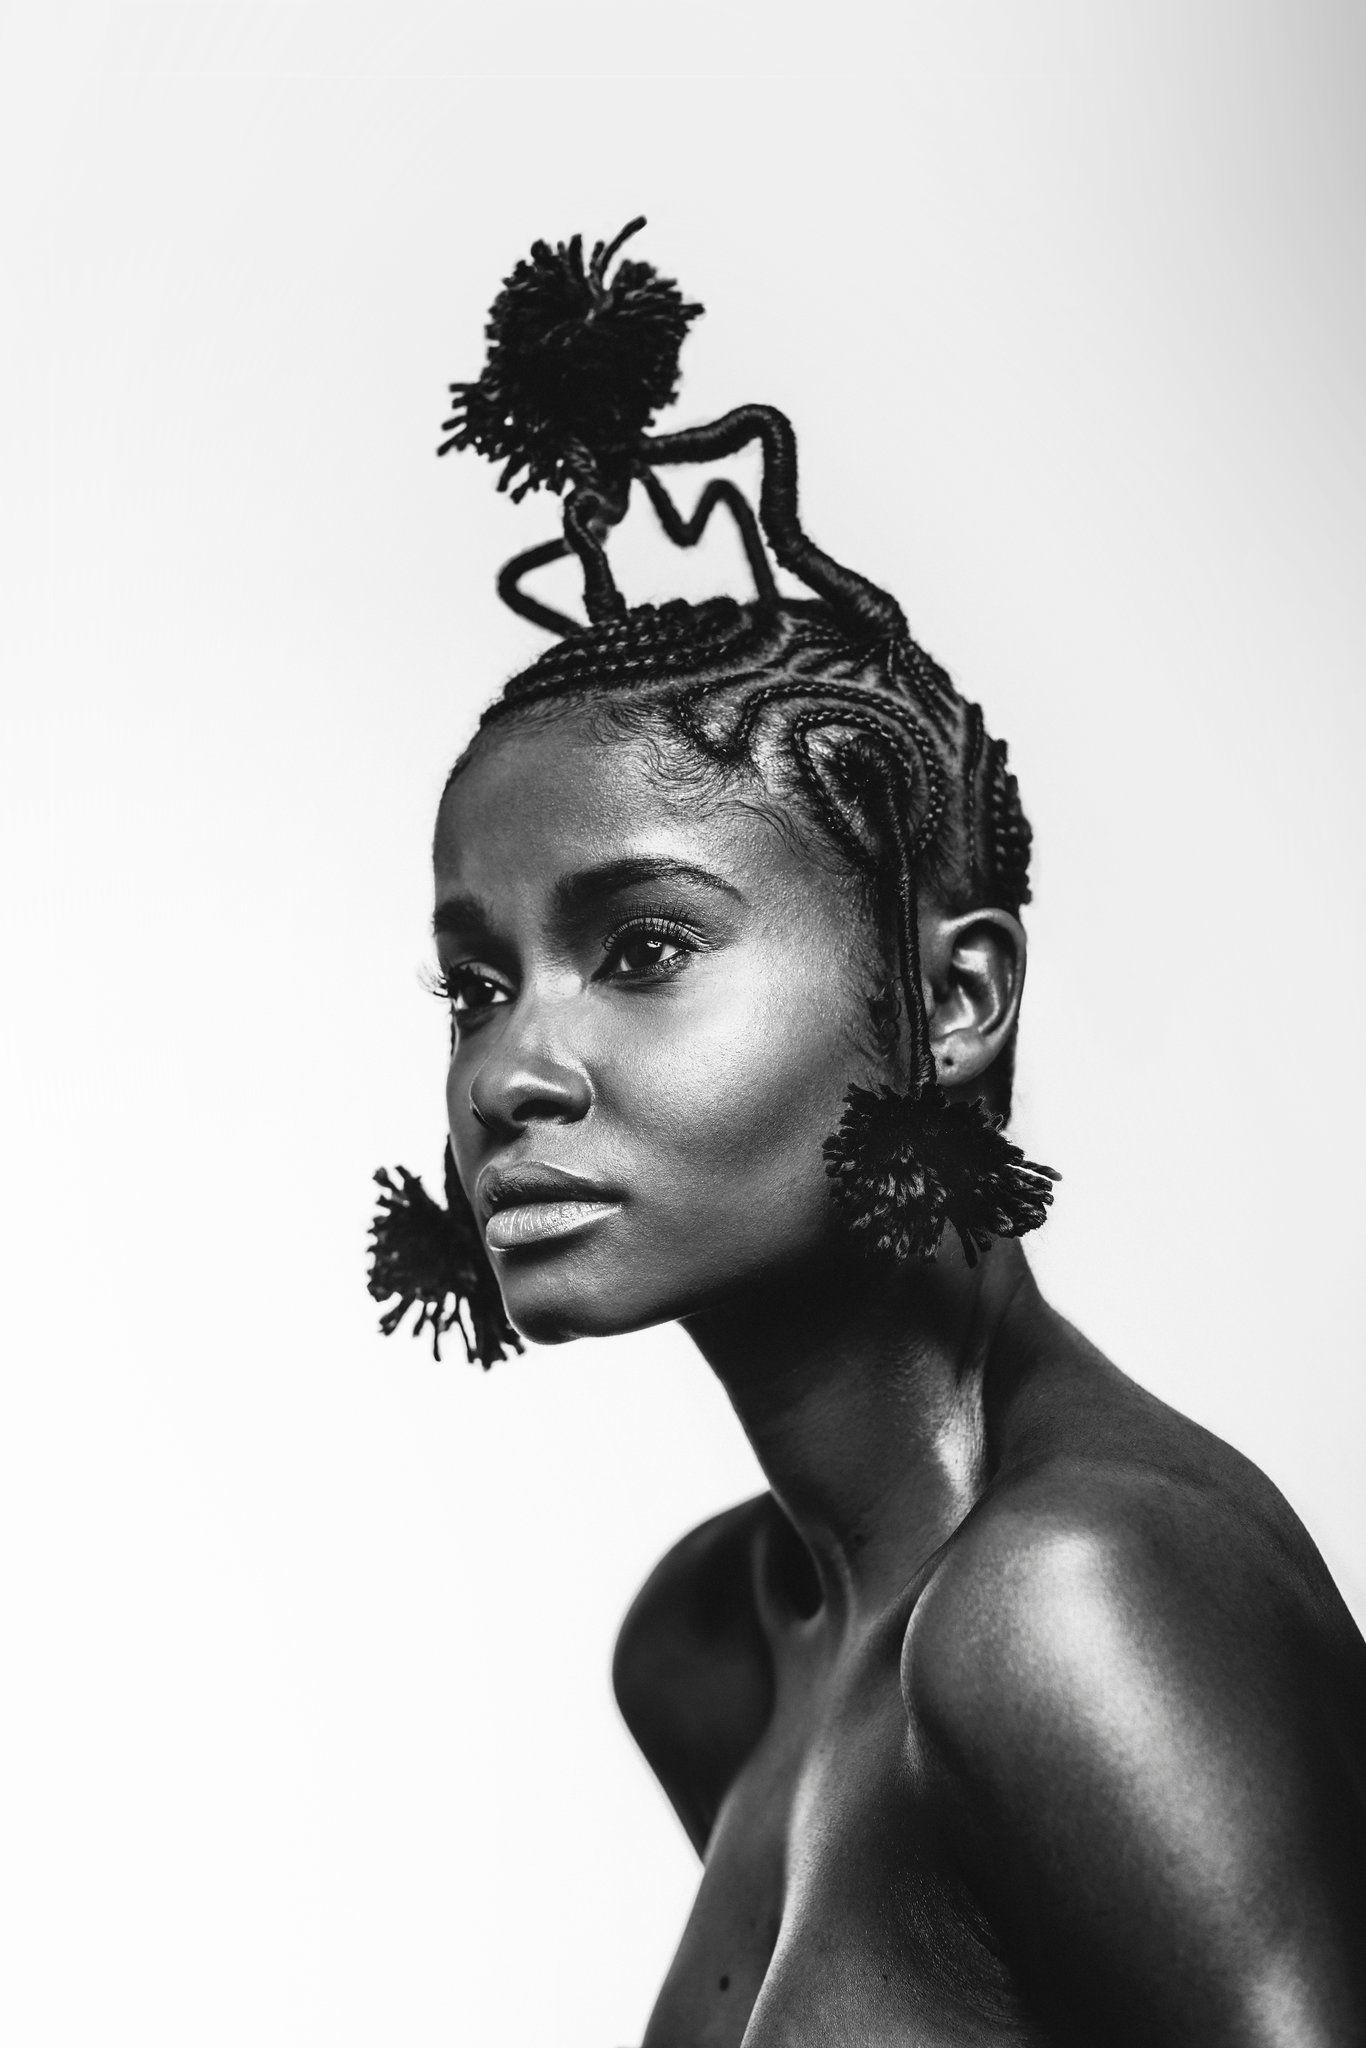 Black Women And Braids Images Align Their History